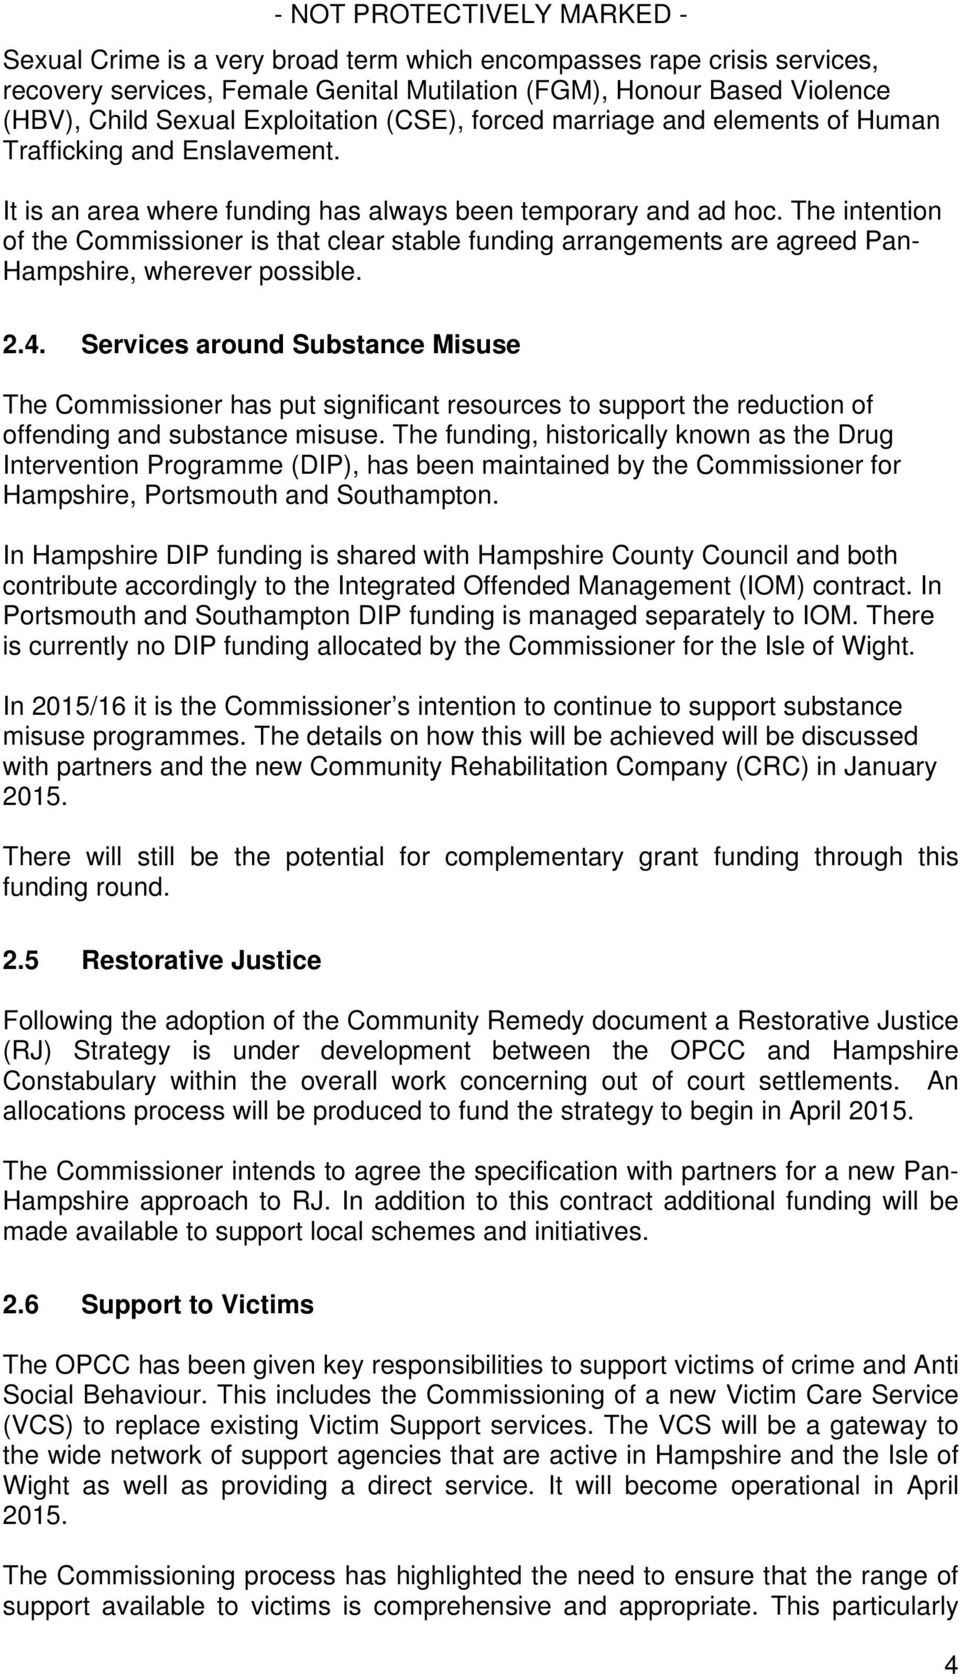 The intention of the Commissioner is that clear stable funding arrangements are agreed Pan- Hampshire, wherever possible. 2.4.